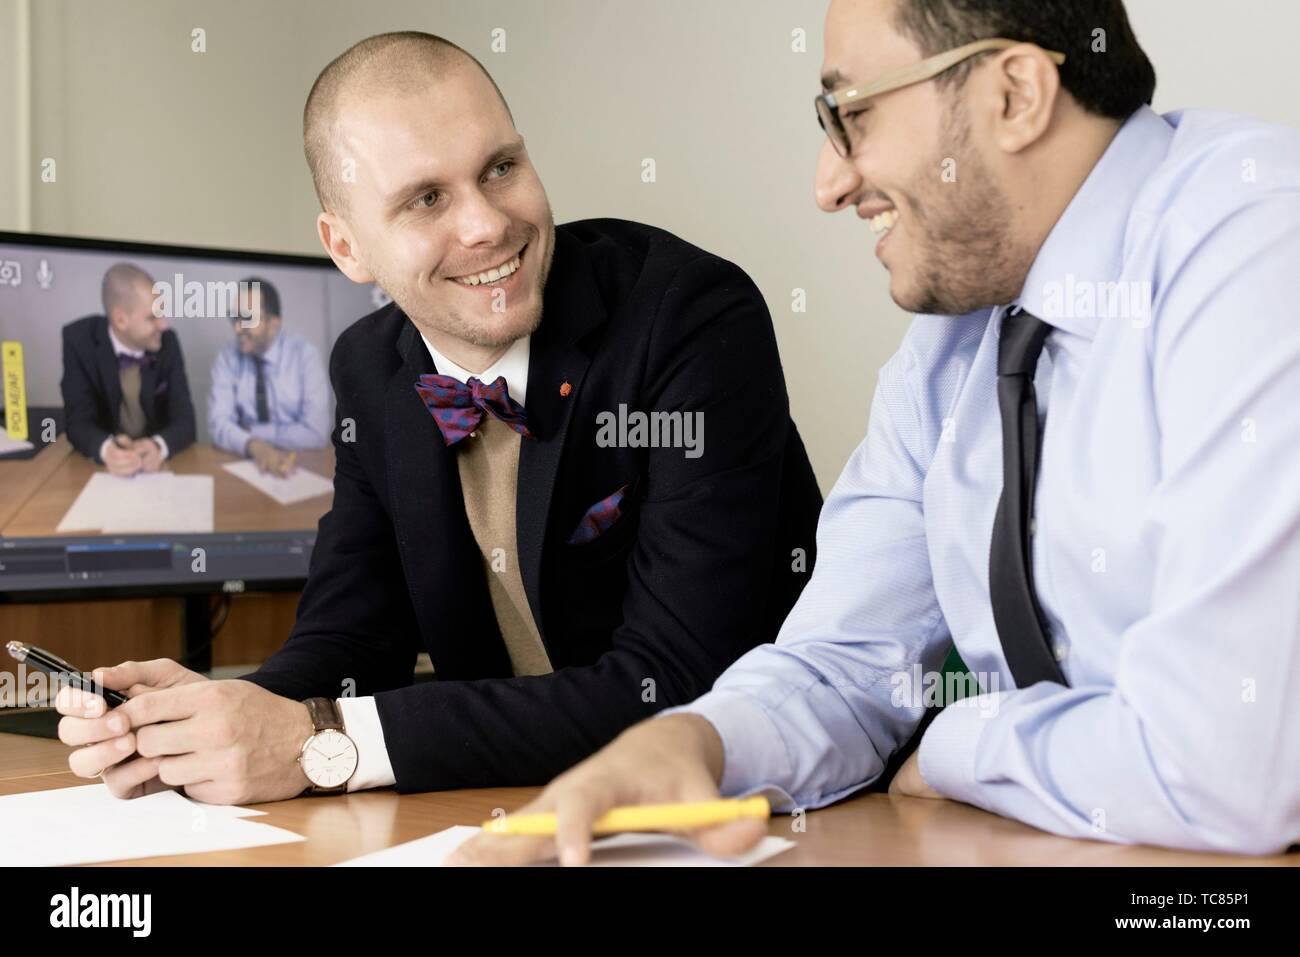 happy business men looking at each other at conference, lawyers consulting at online live stream, in Cottbus, Brandenburg, Germany - Stock Image